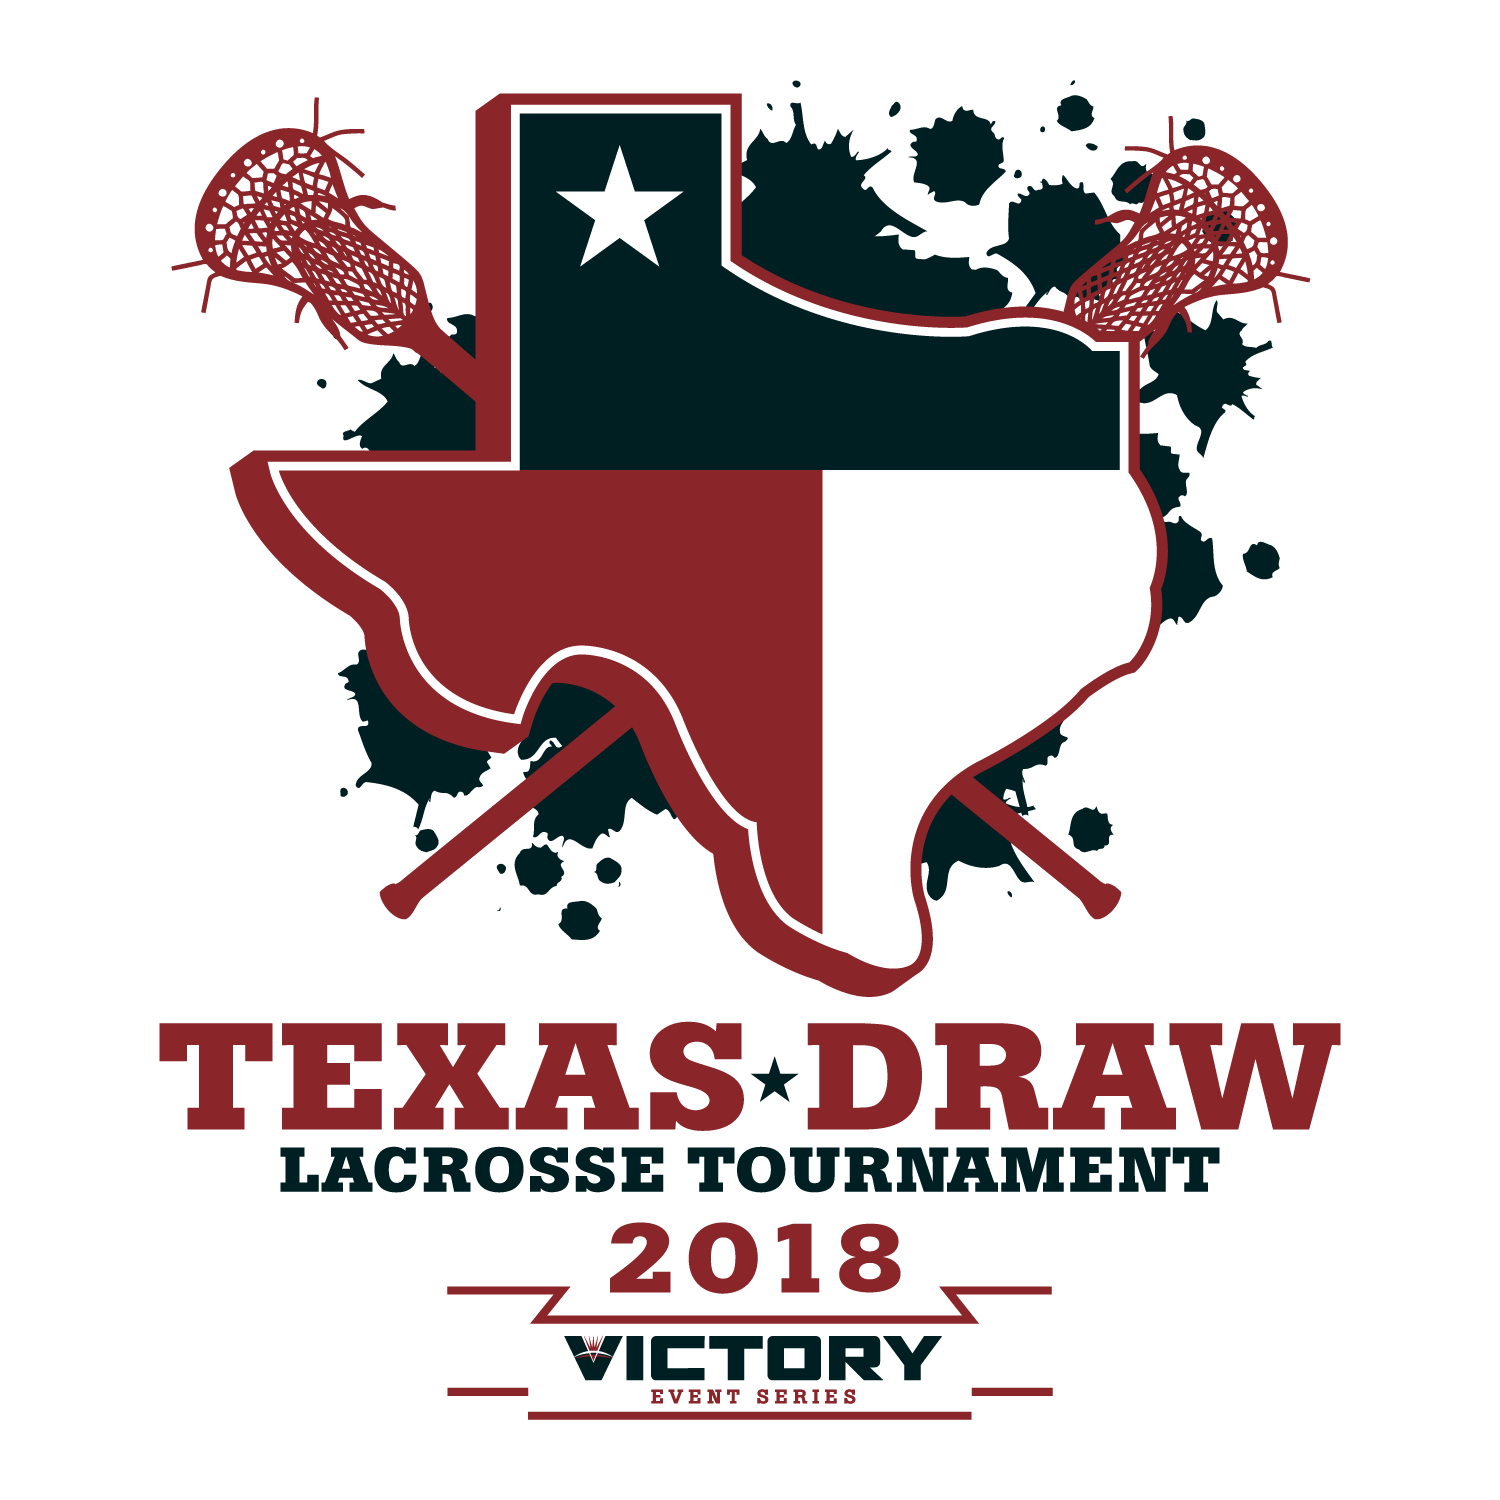 Texas Draw Lacrosse Tournament 2018 Logo